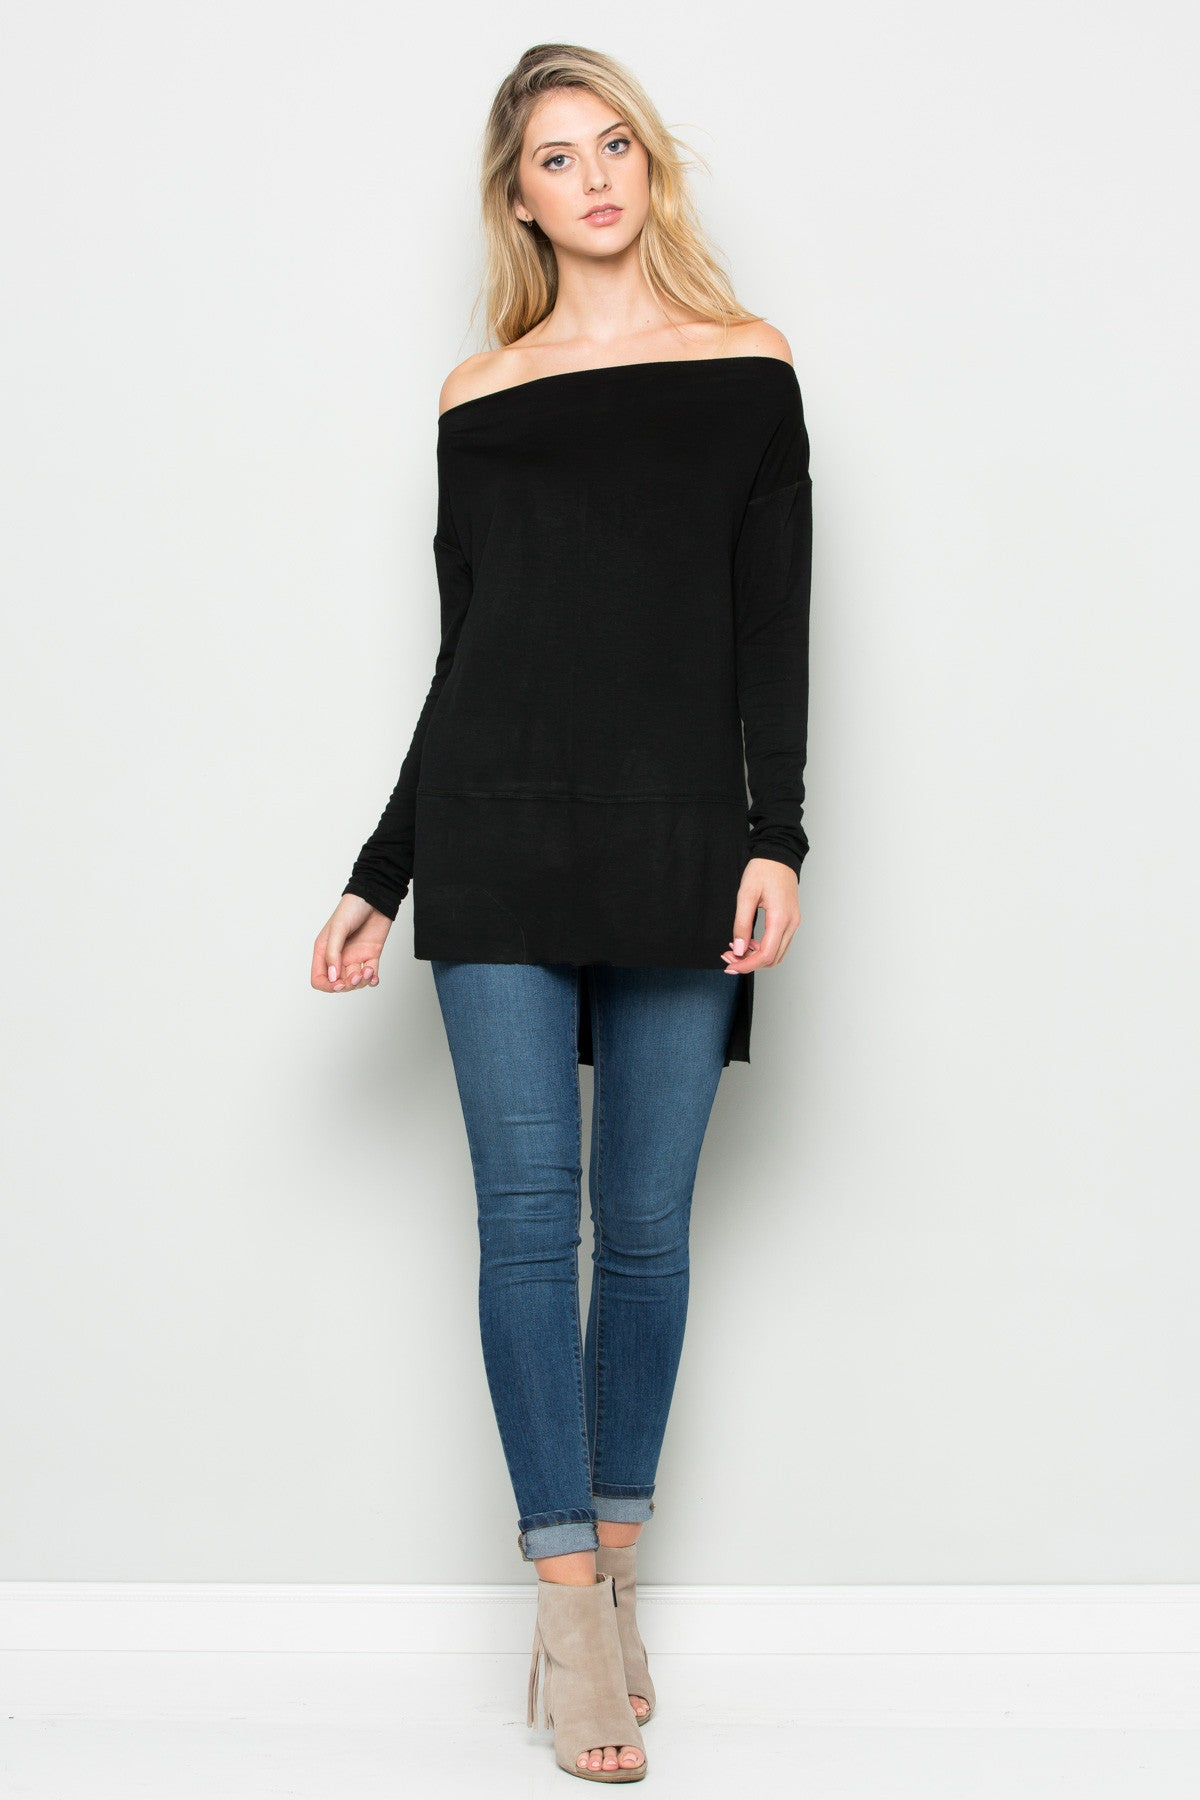 Black Boat Neck Hi-Low Blouse - Tops - My Yuccie - 4